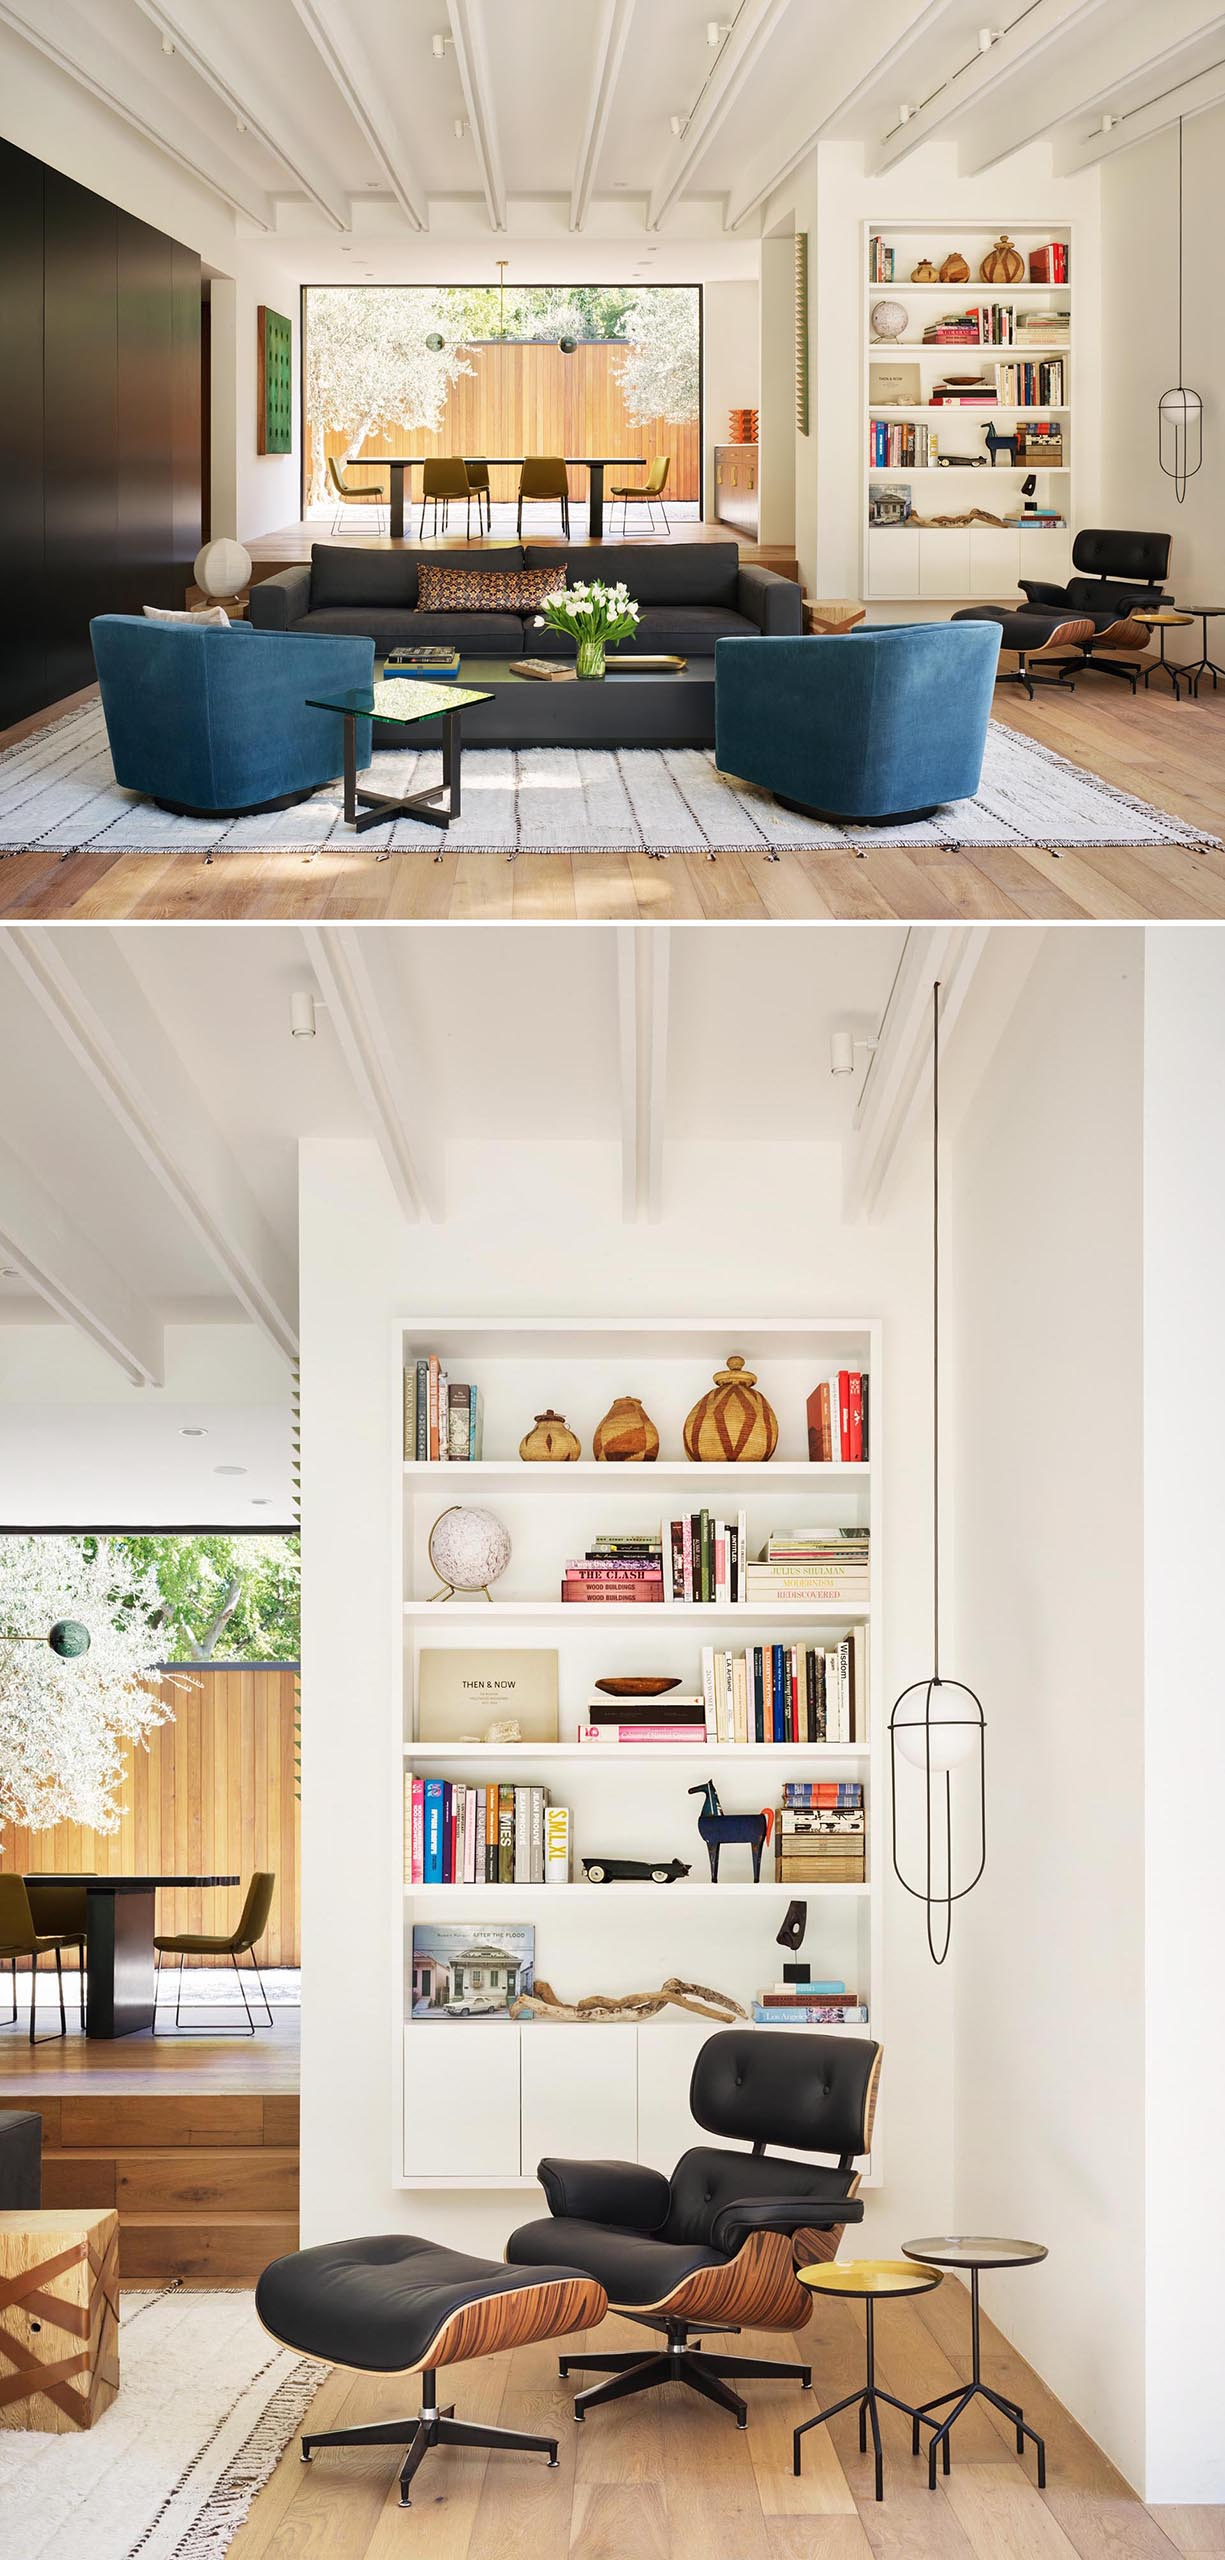 A modern living room with a reading area that has a built-in bookshelf.